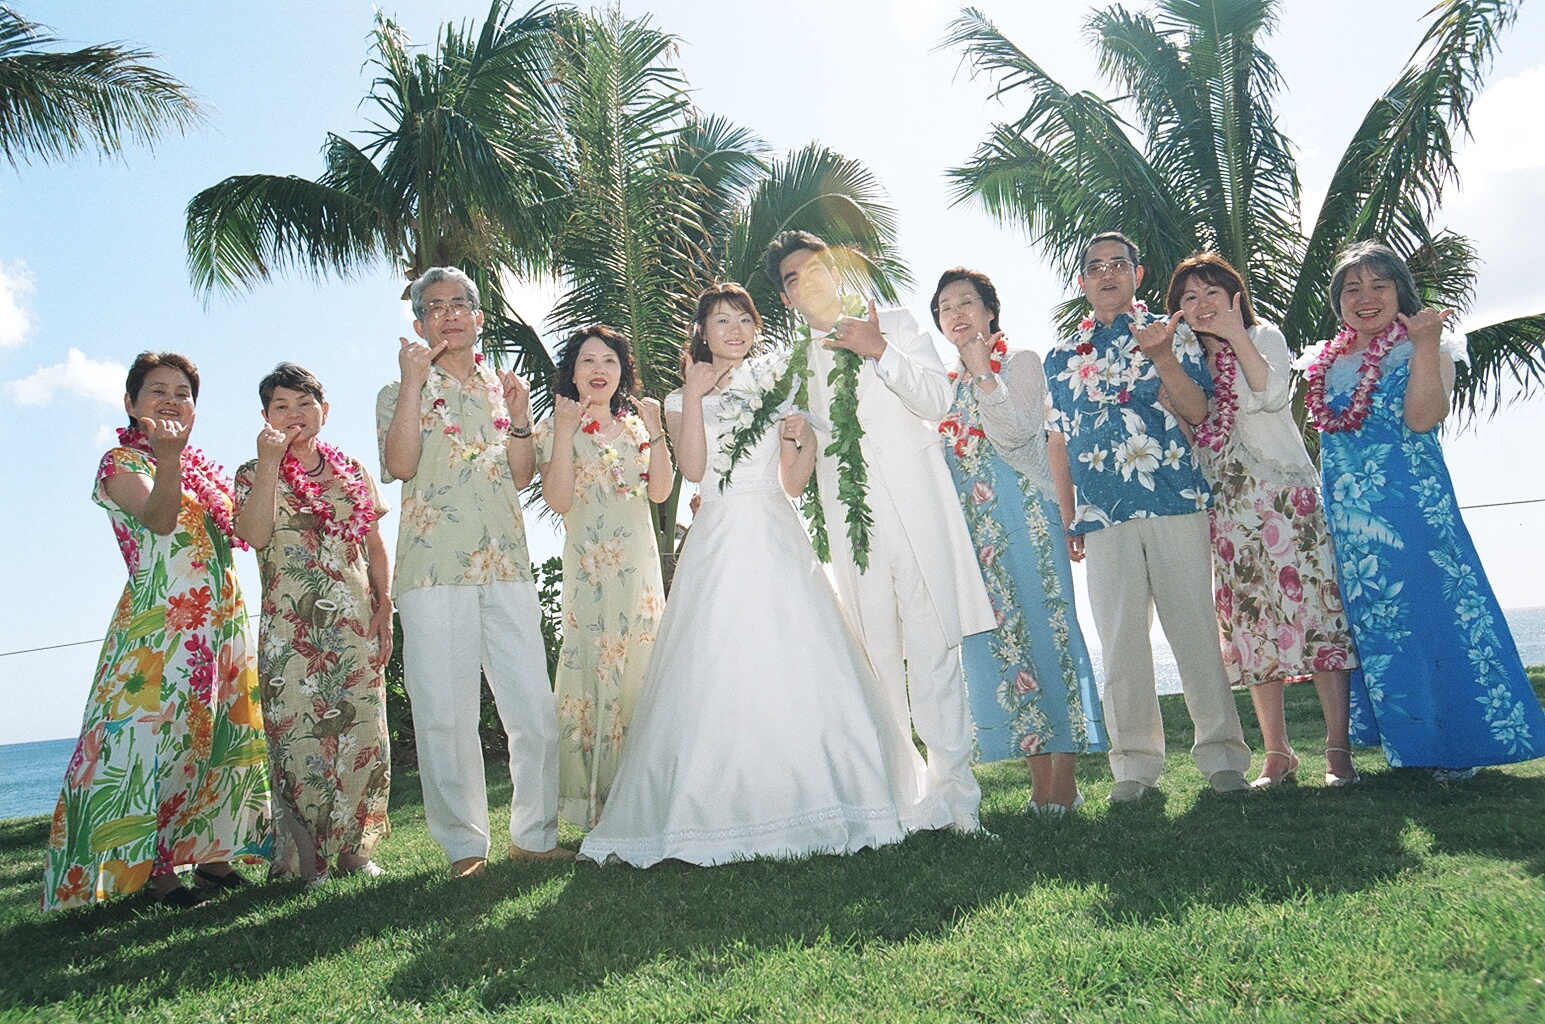 12afd3d711df3 Happy Wedding in Hawaii  wedding 参列者の服装 - livedoor Blog ...